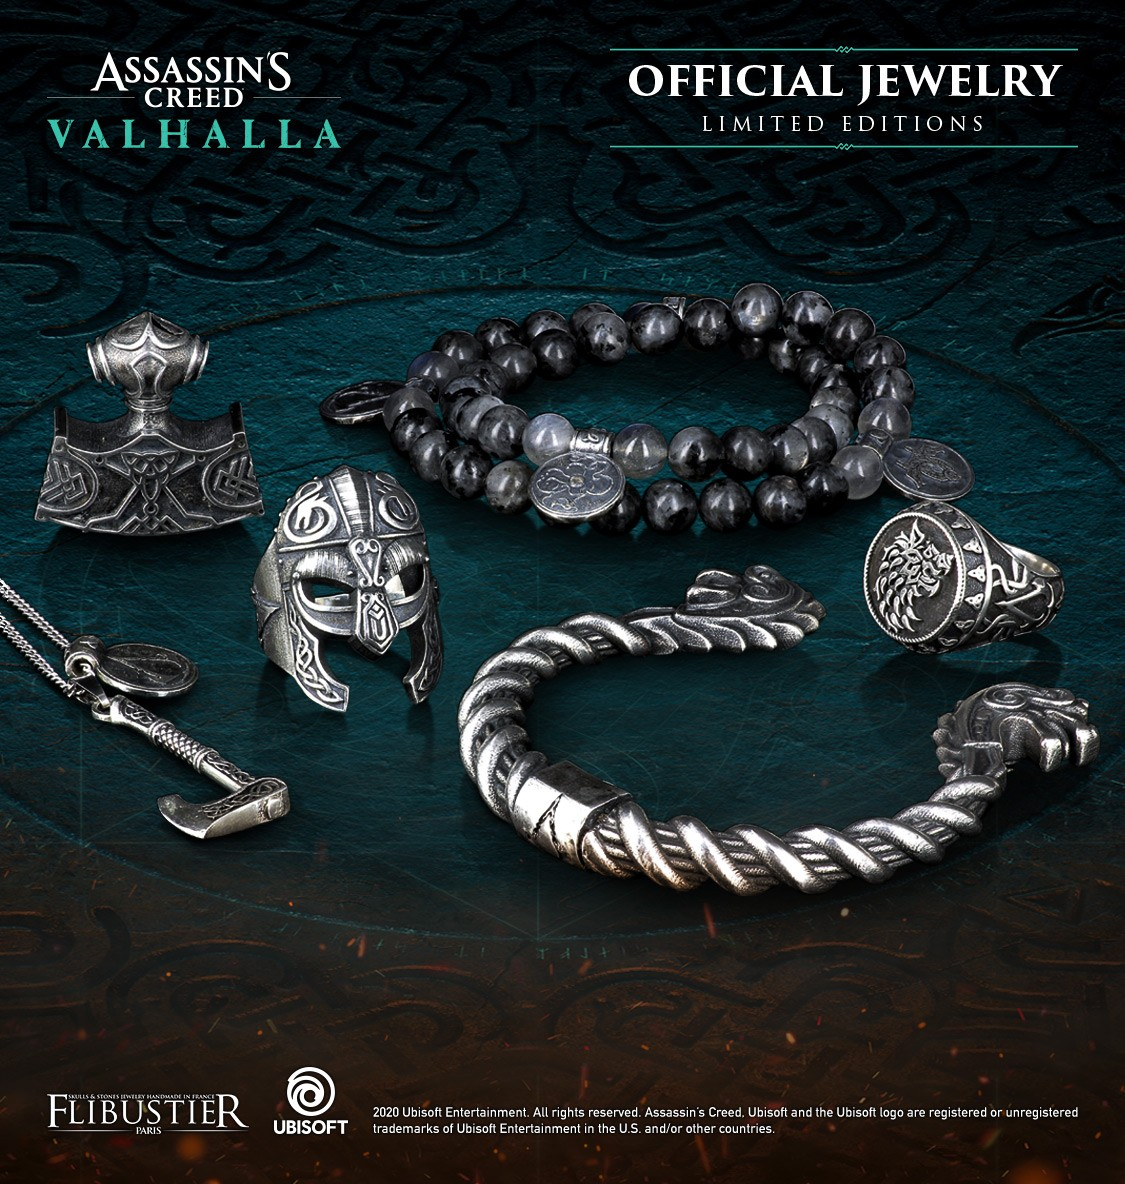 Officially licensed Assassin's Creed Valhalla